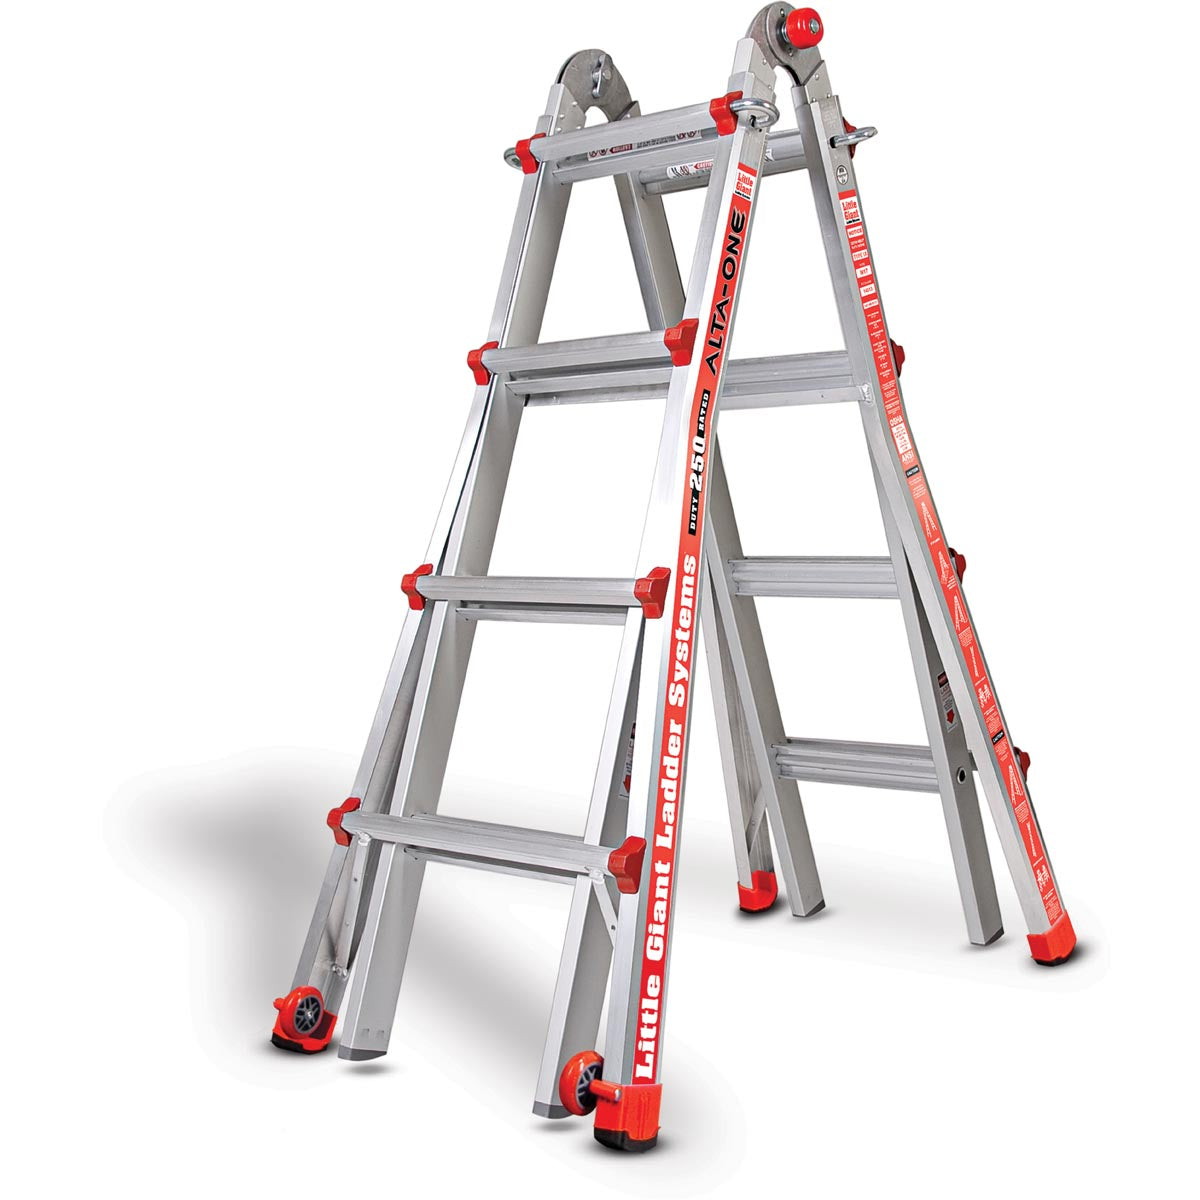 BA. Little Giant® Safety Aluminum Step Ladder - 2 StepThe Little Giant Safety Step is a unique combination of strength and simplicity. The Safety Step is constructed with super-strong, lightweight aerospace-grade aluminum; its wide, slip-resistant steps give you unmatched comfort and stability.